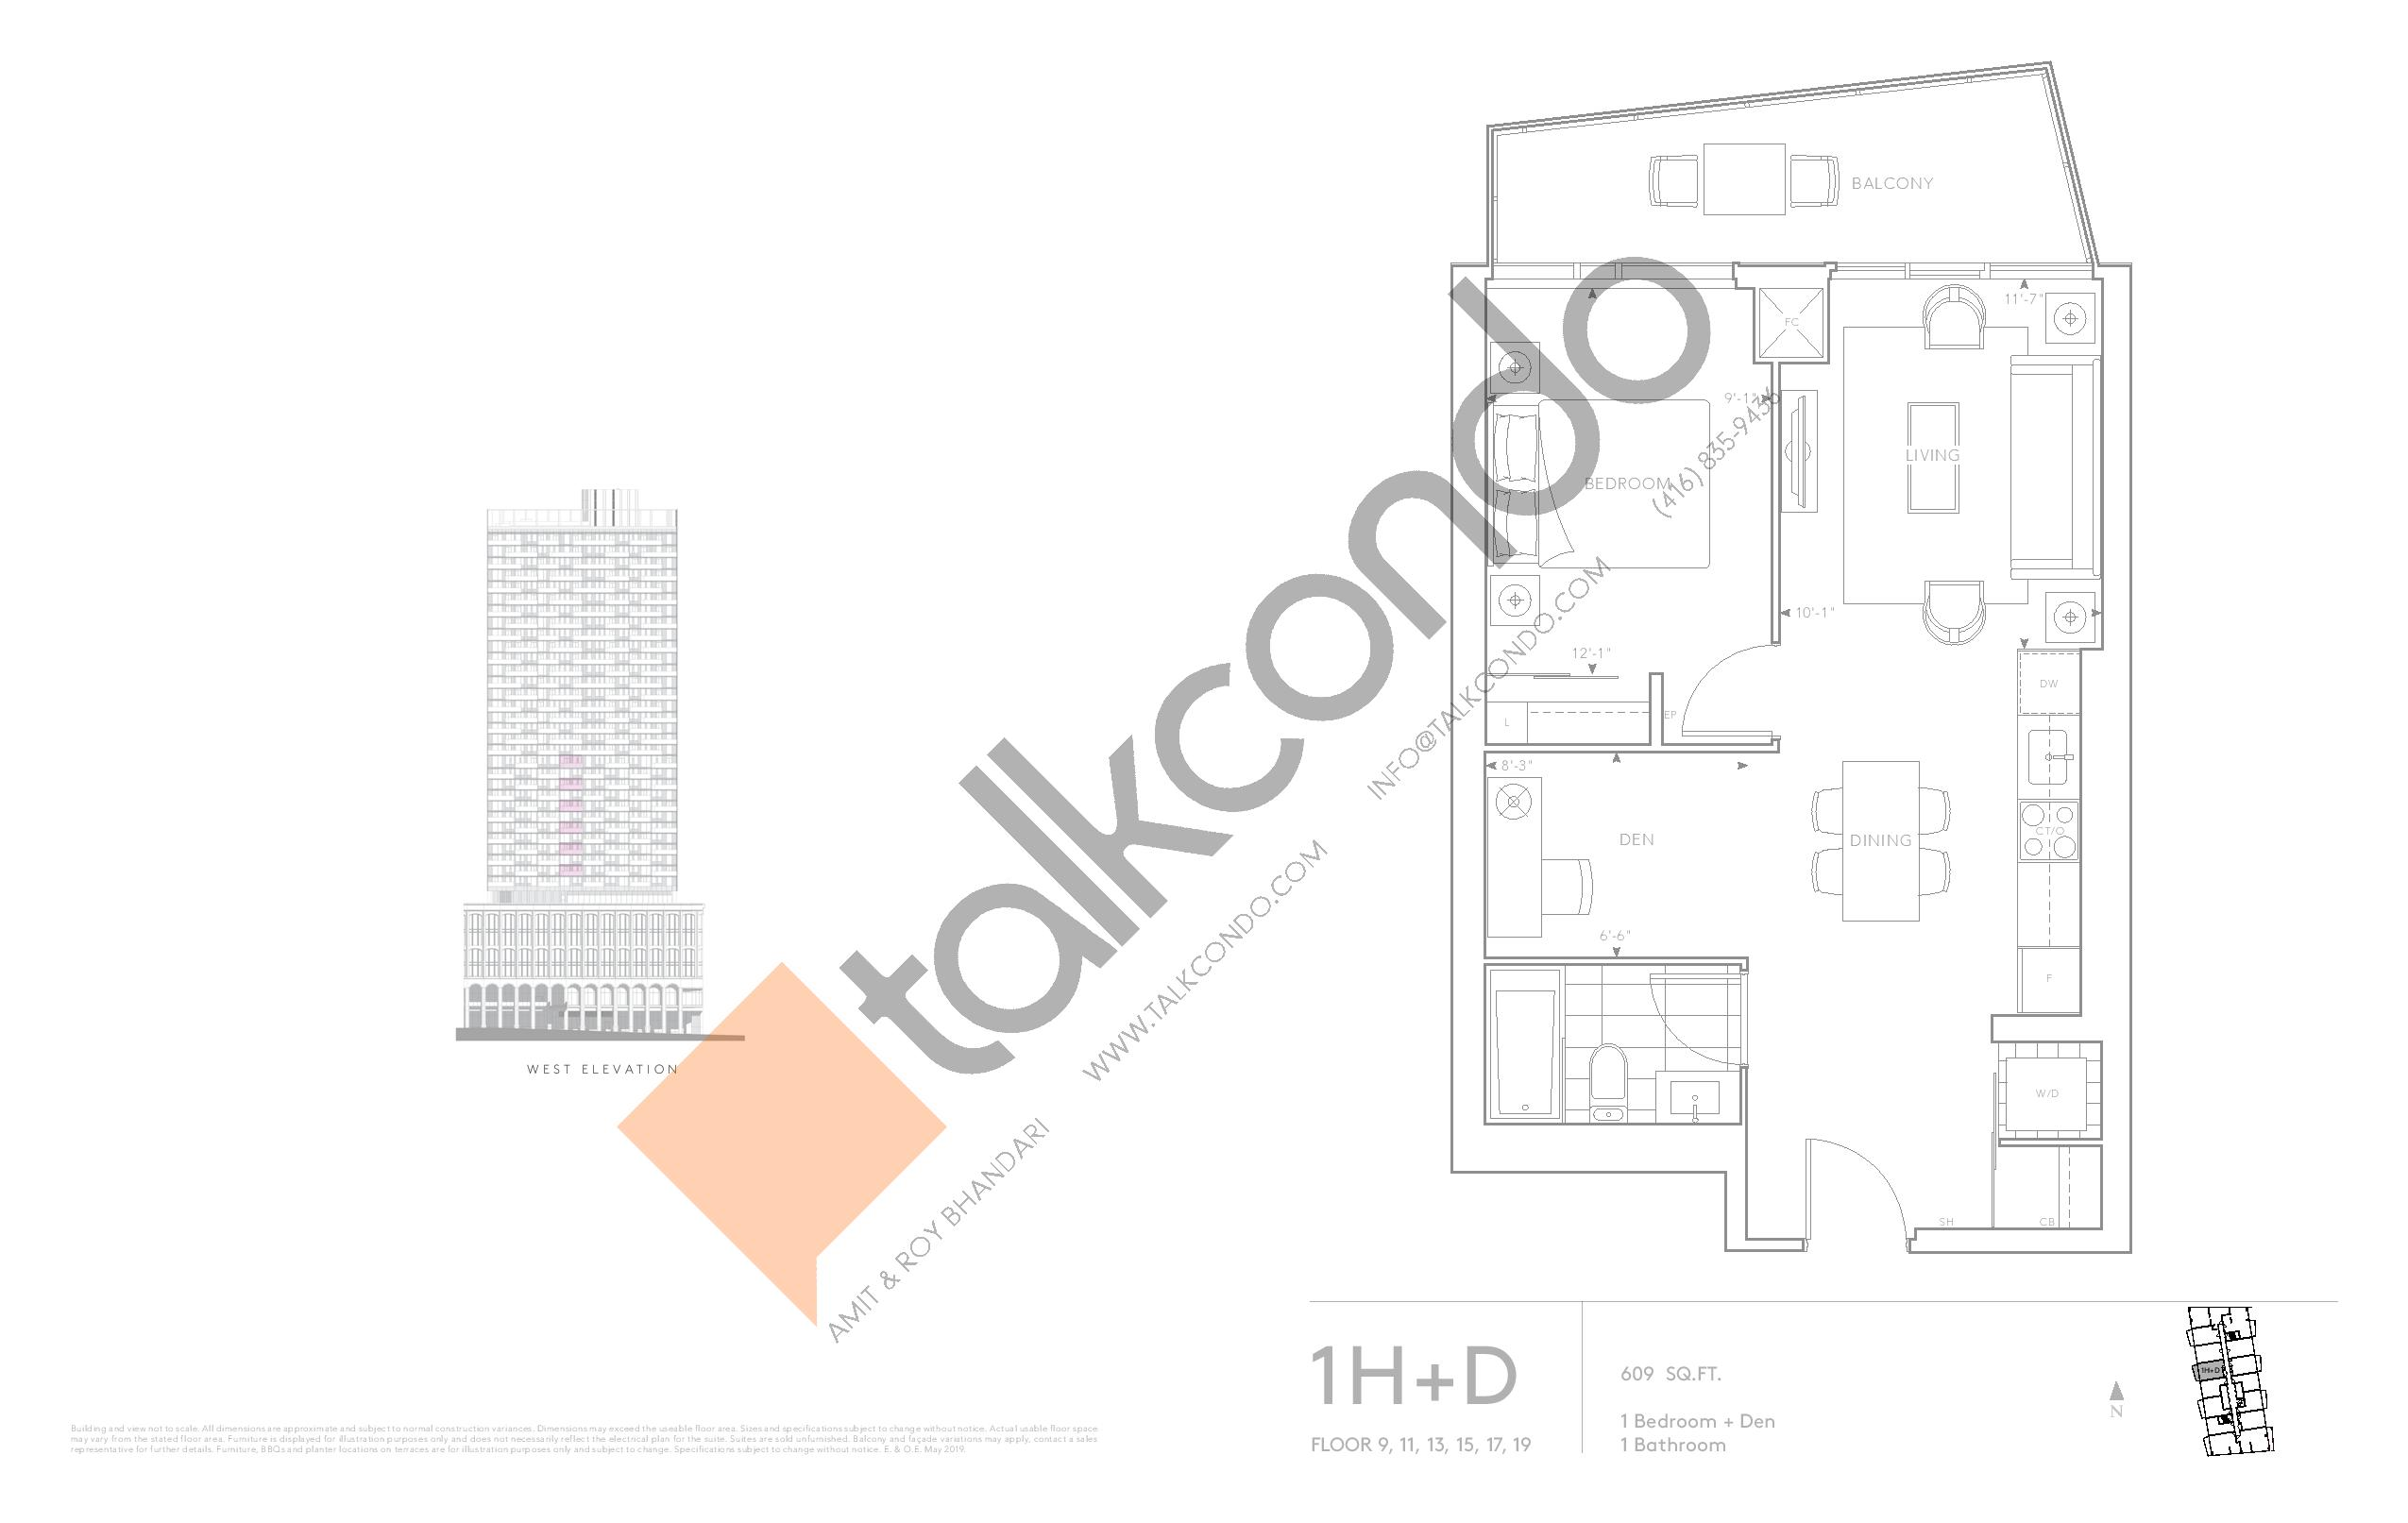 1H+D - Classic Series Floor Plan at Tridel at The Well Condos - 609 sq.ft